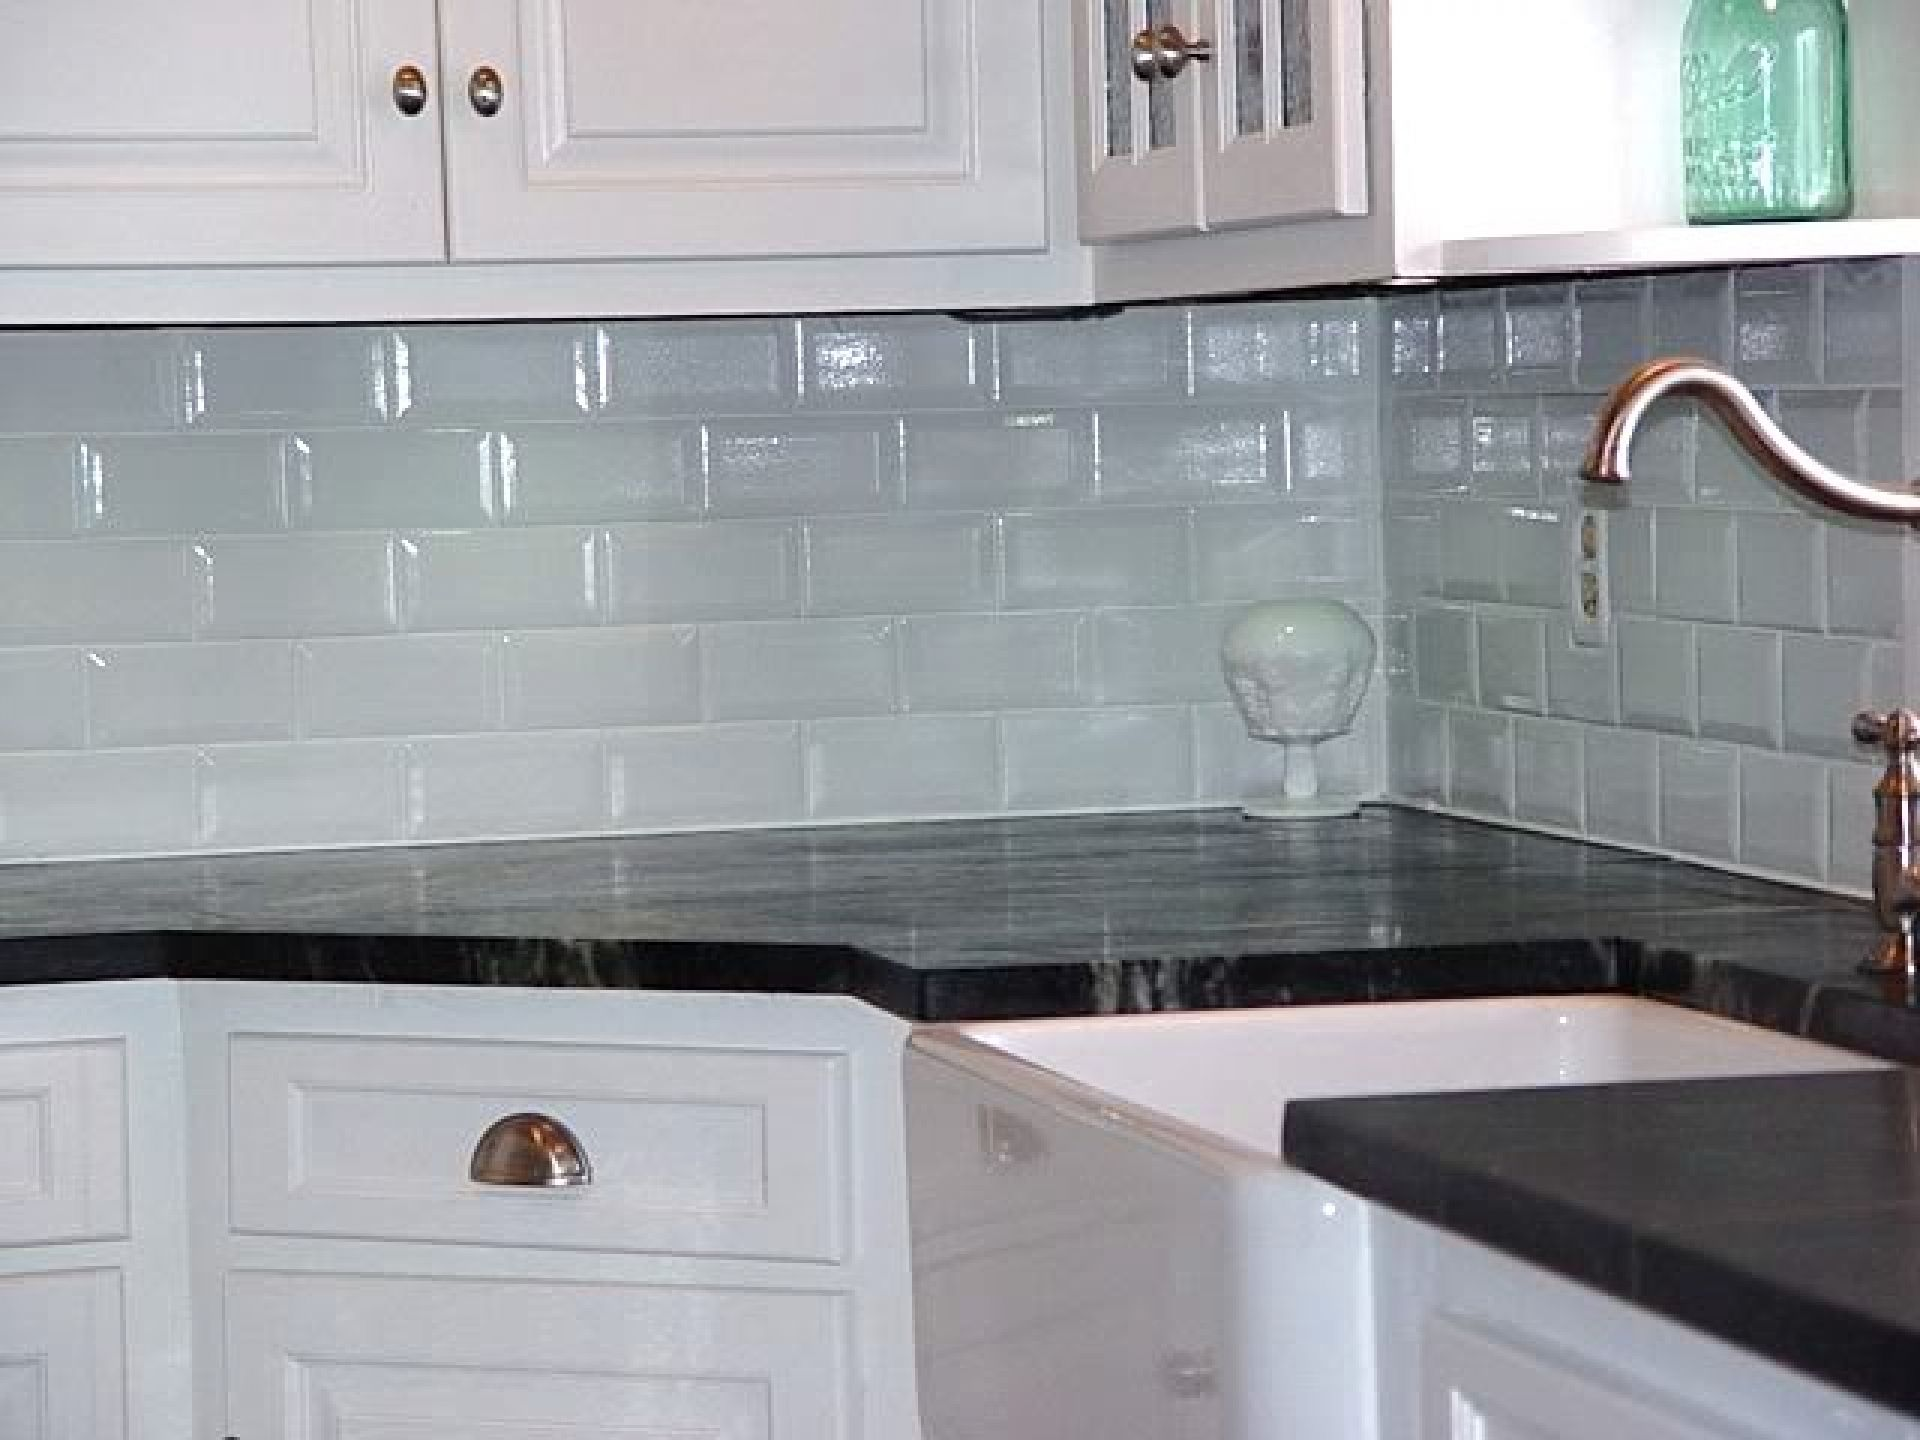 White Glosssy Subway Tiles Backsplash Kitchen For Small L Spahed Kitchen Design With Granite Top